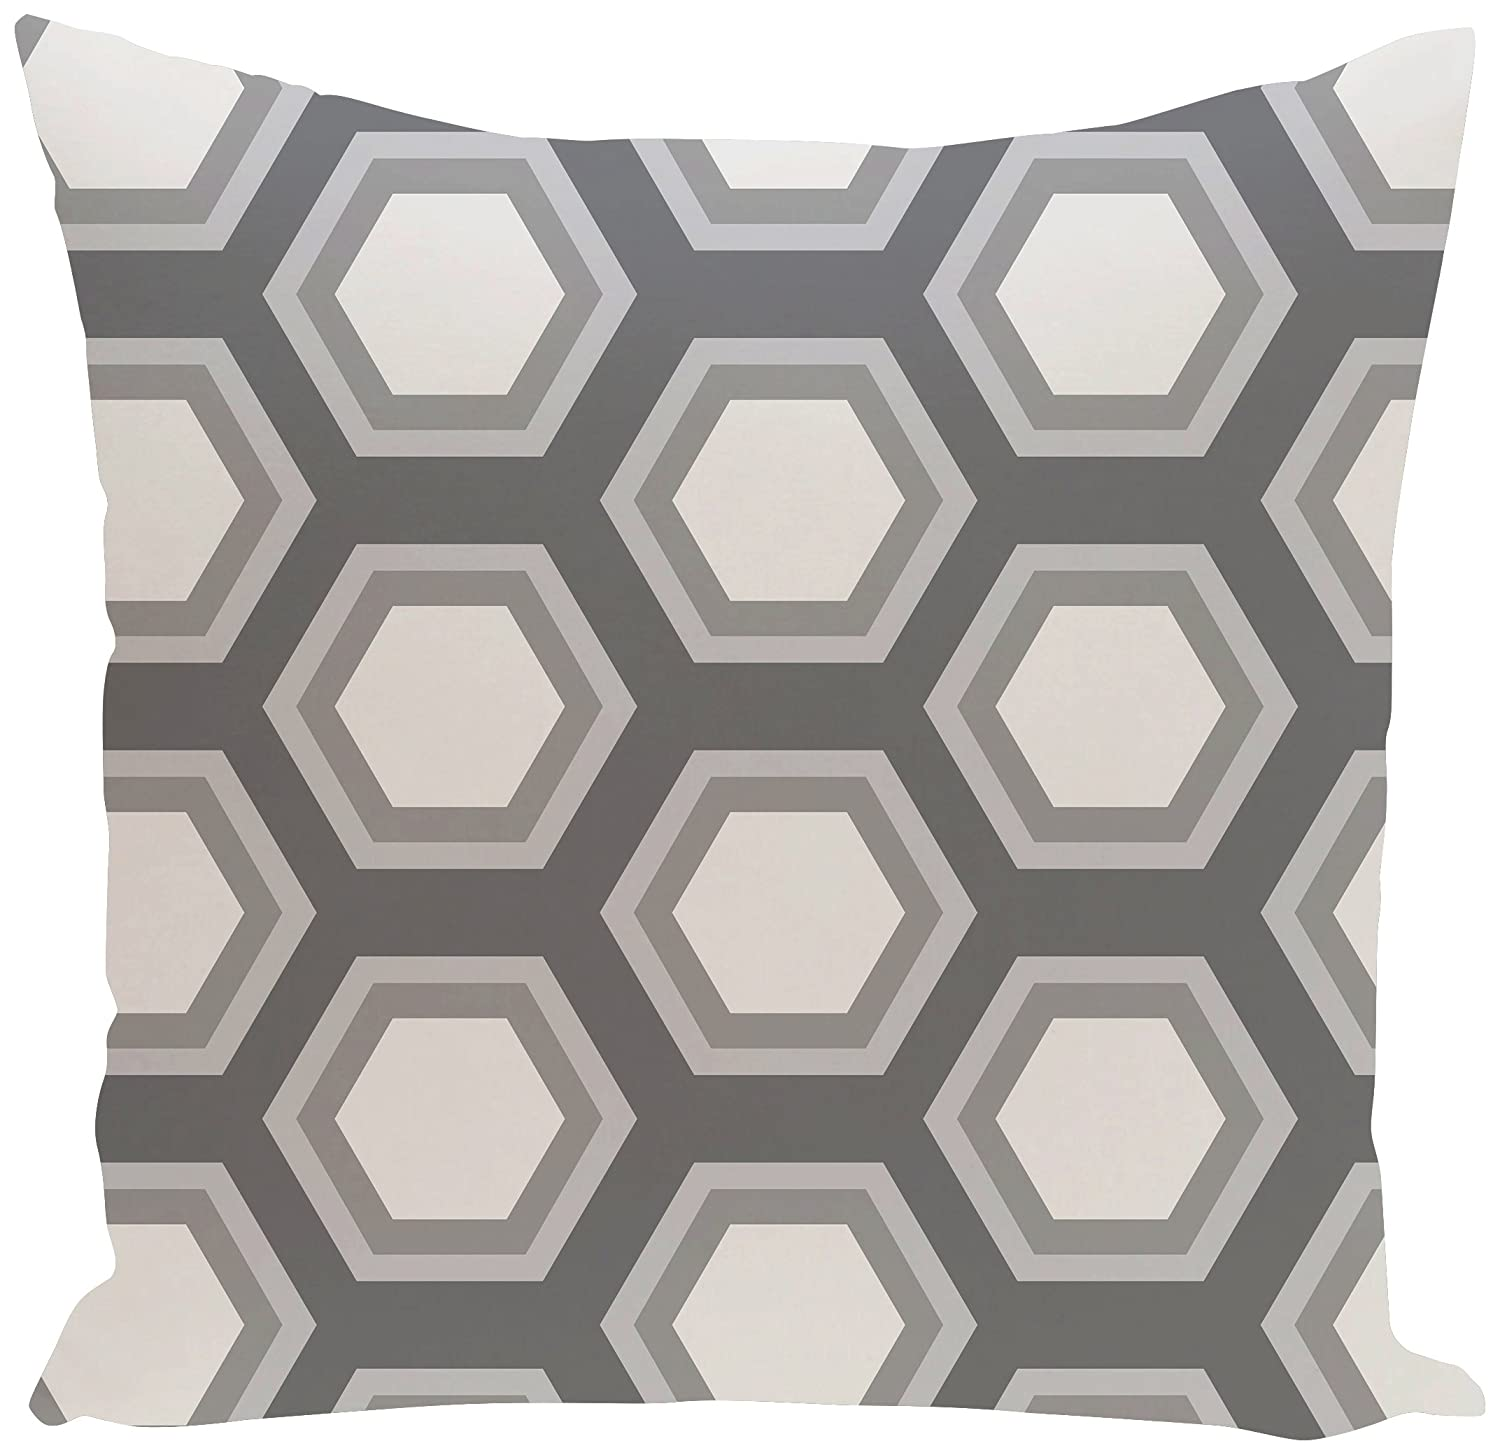 E by design O5PGN121GY3GY4-16 Printed Outdoor Pillow